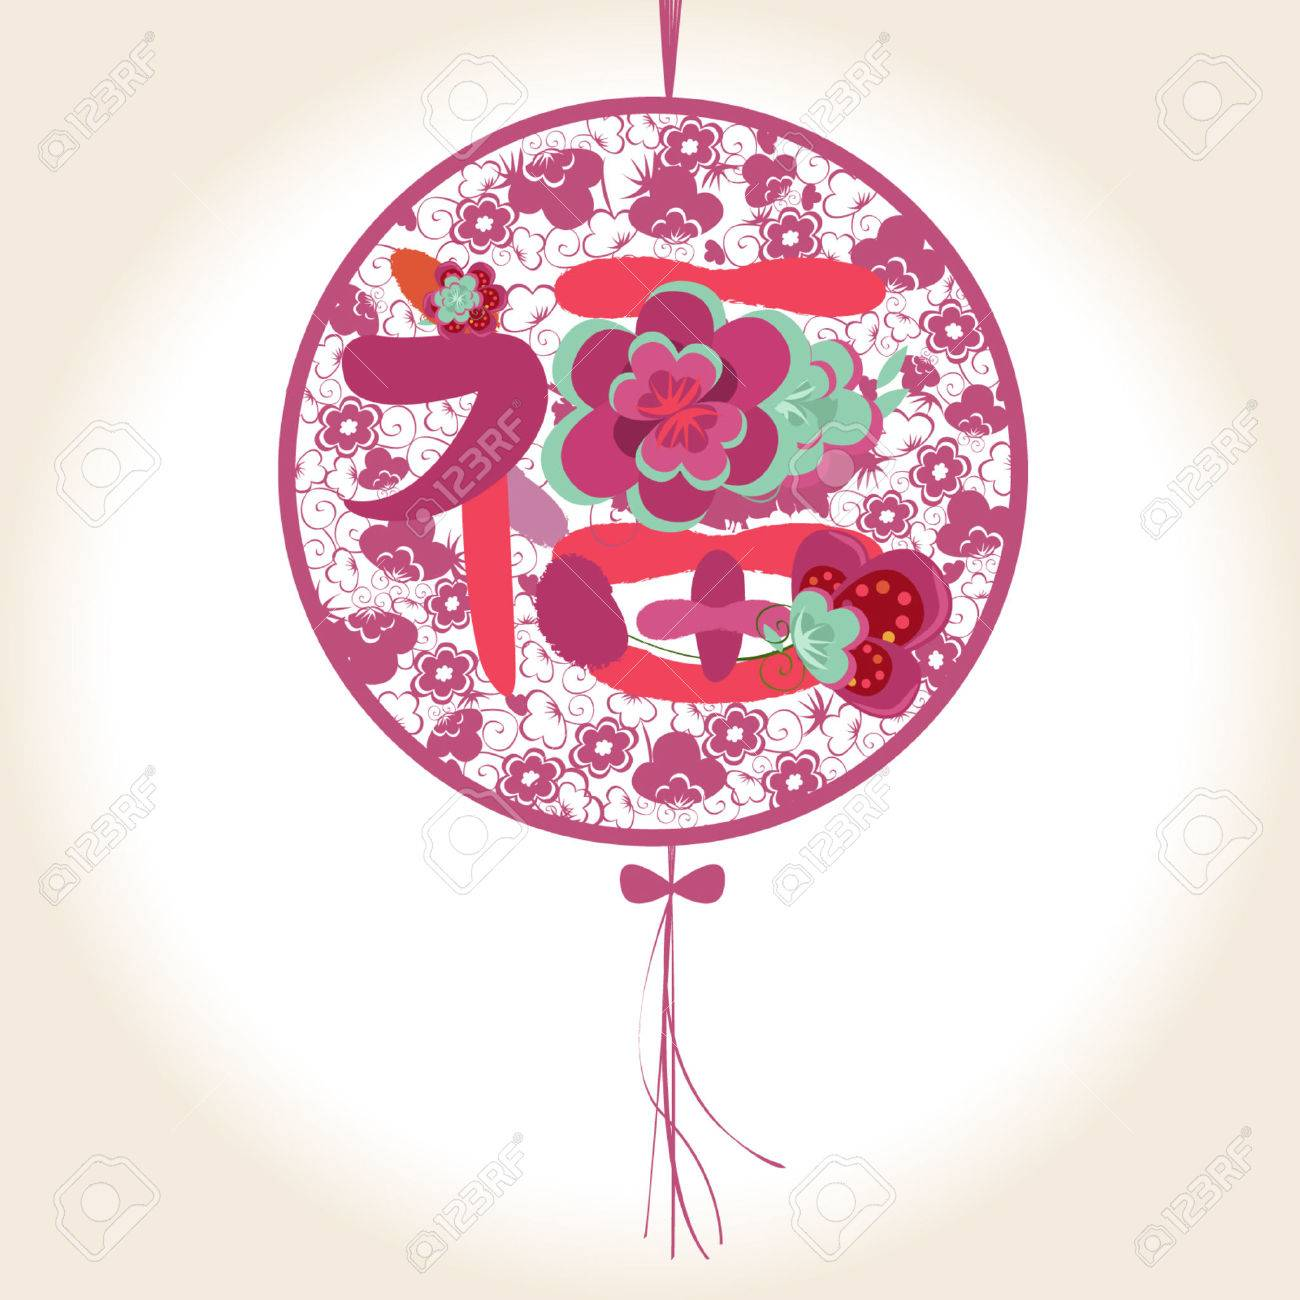 Colorful typography design for lunar new year chinese new year colorful typography design for lunar new year chinese new year 2015 greeting on floral background it kristyandbryce Choice Image